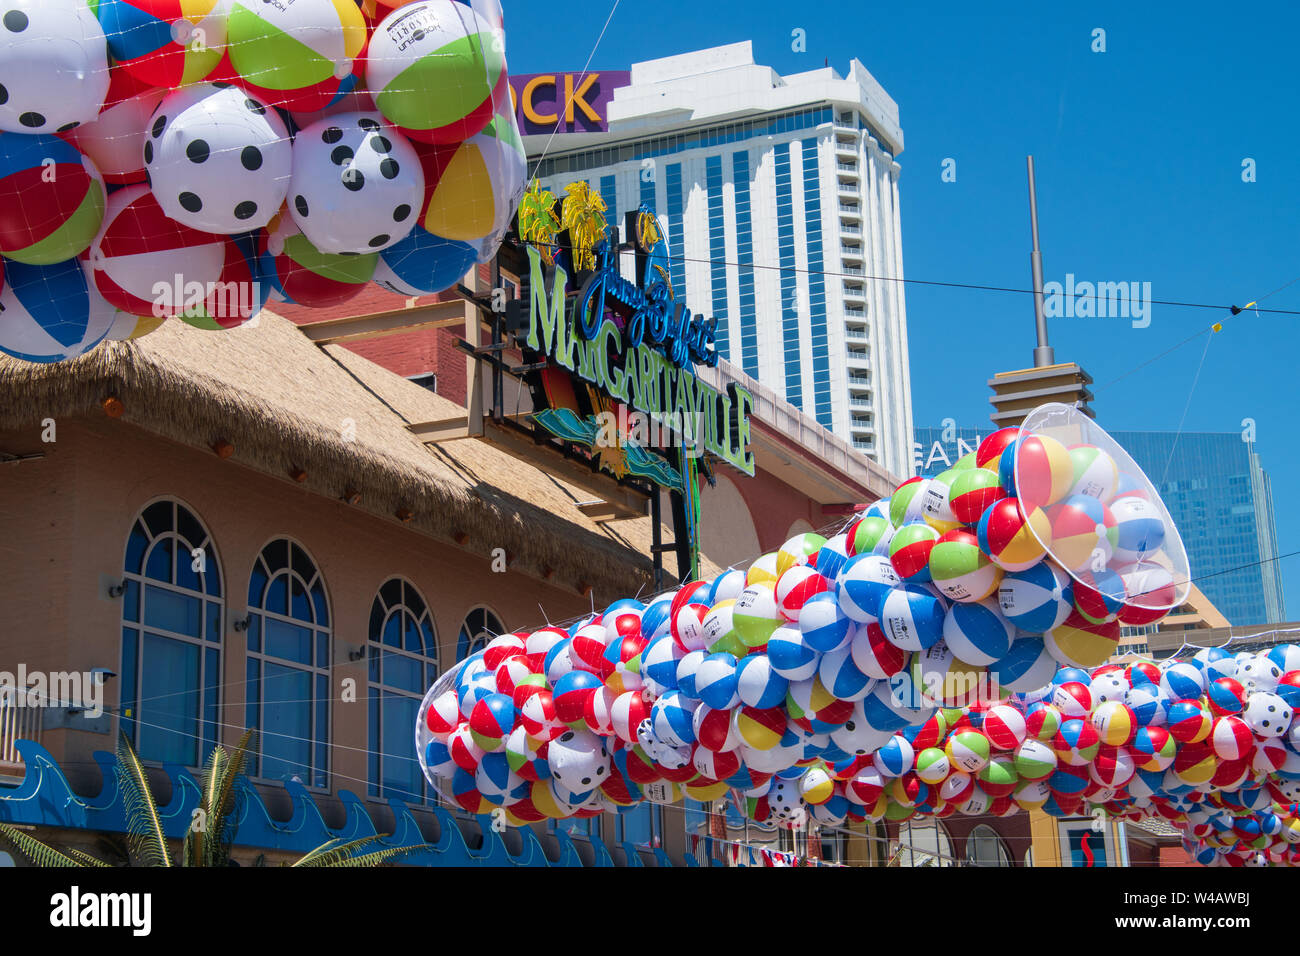 Atlantic City, New Jersey - May 24, 2019: The start of the